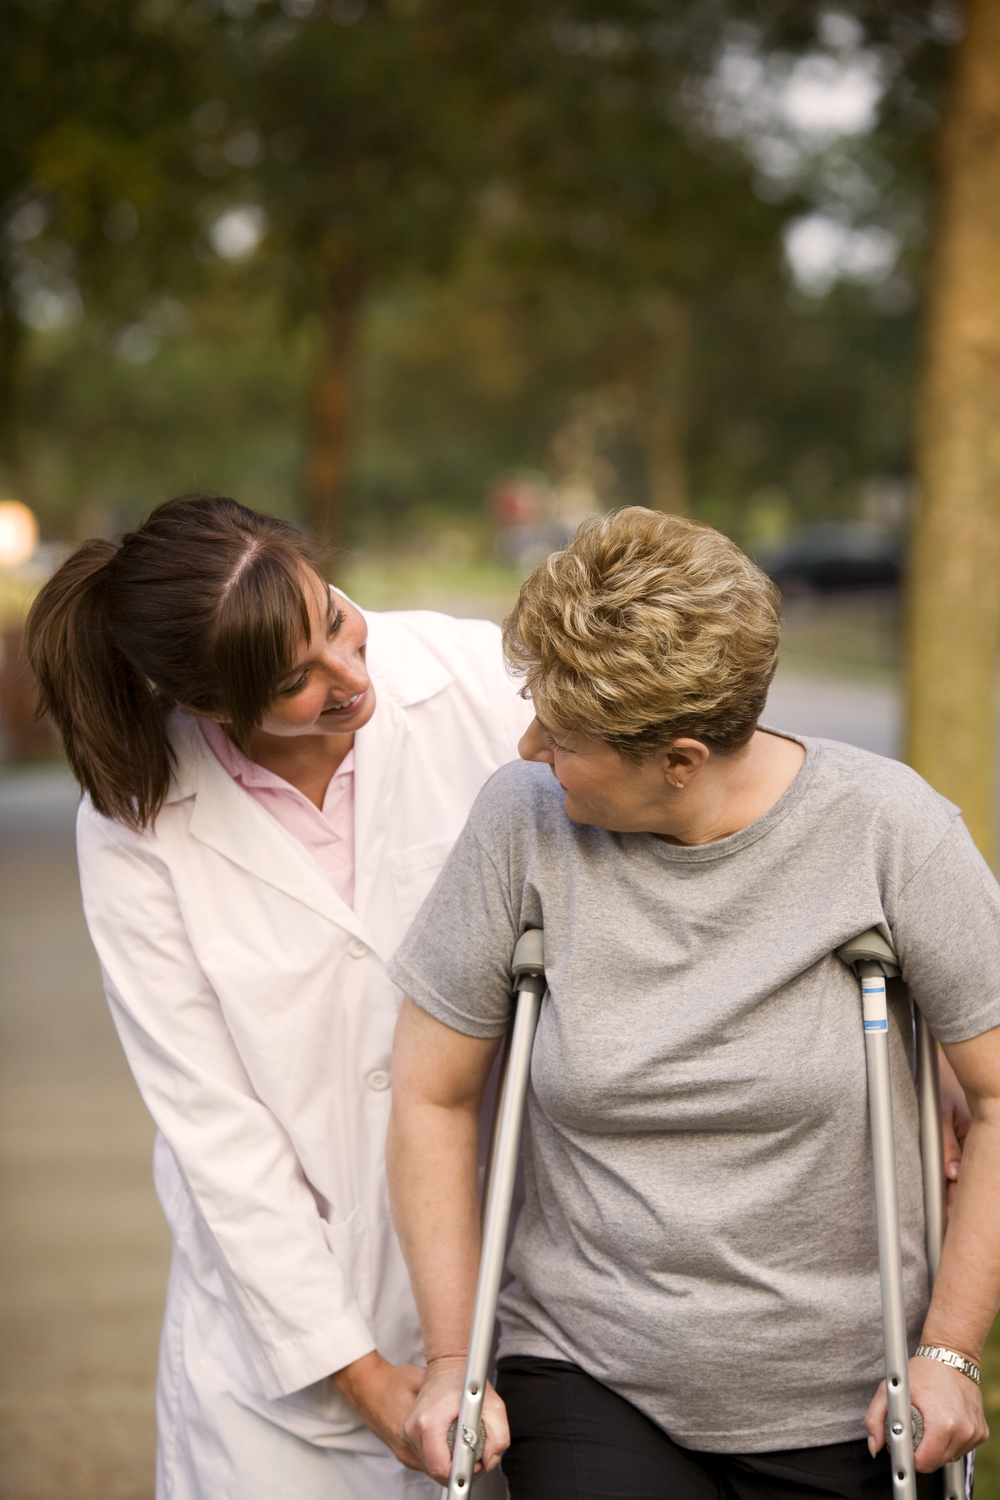 Nurse helping woman with crutches